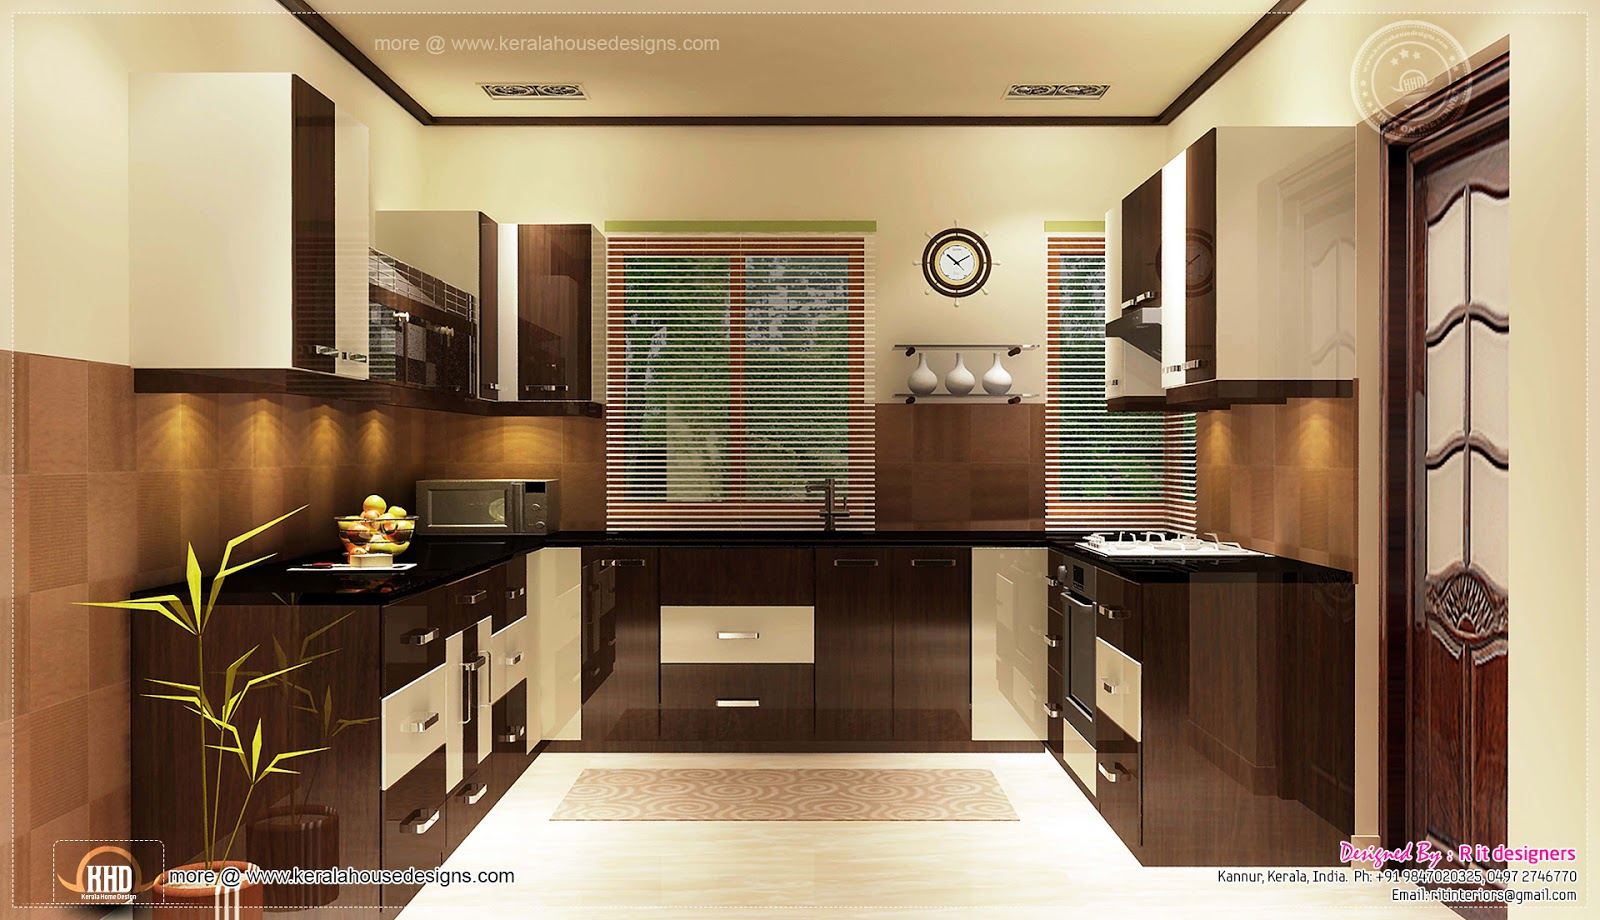 Home interior designs by rit designers kerala home - Interior home design pic ...